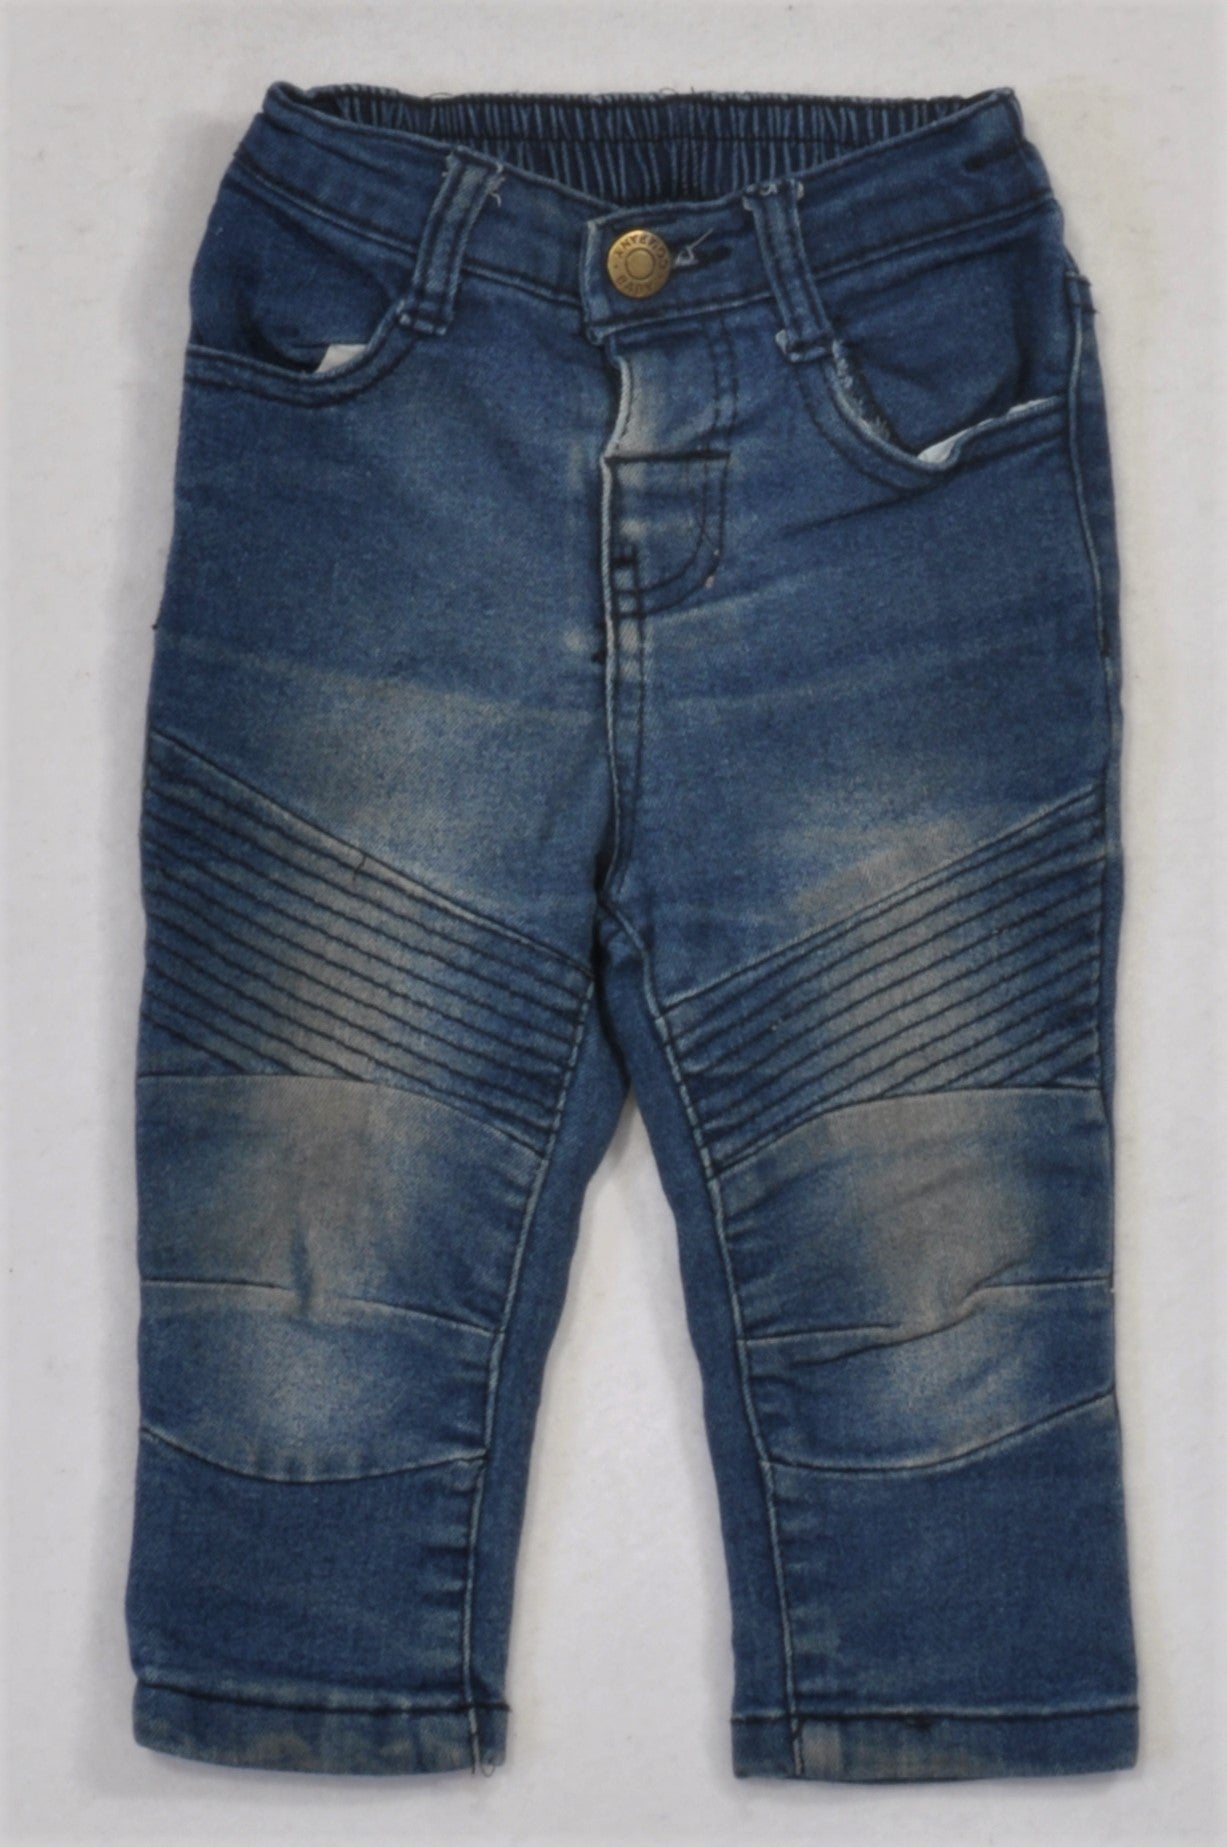 Ackermans Distressed Stone Wash Knee Detail Jeans Boys 6-12 months